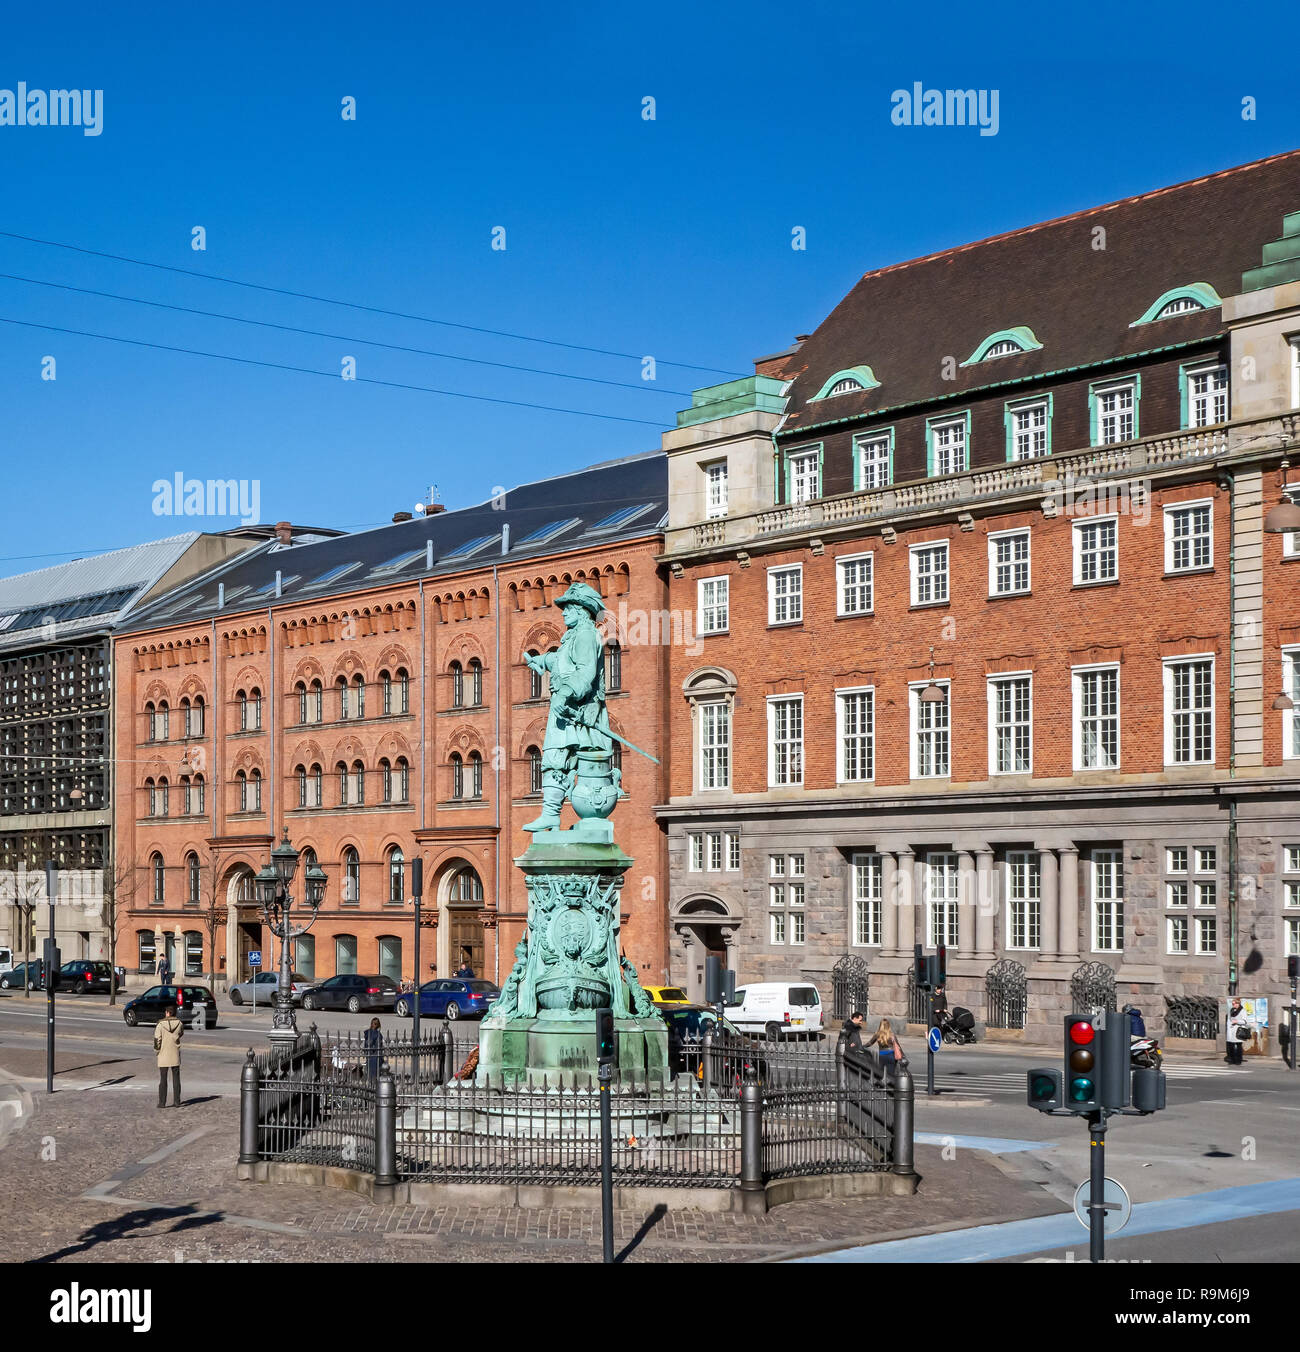 Statue of danish - norwegian admiral Niels Juel at Holmens Kanal in central Copenhagen Denmark Europe - Stock Image